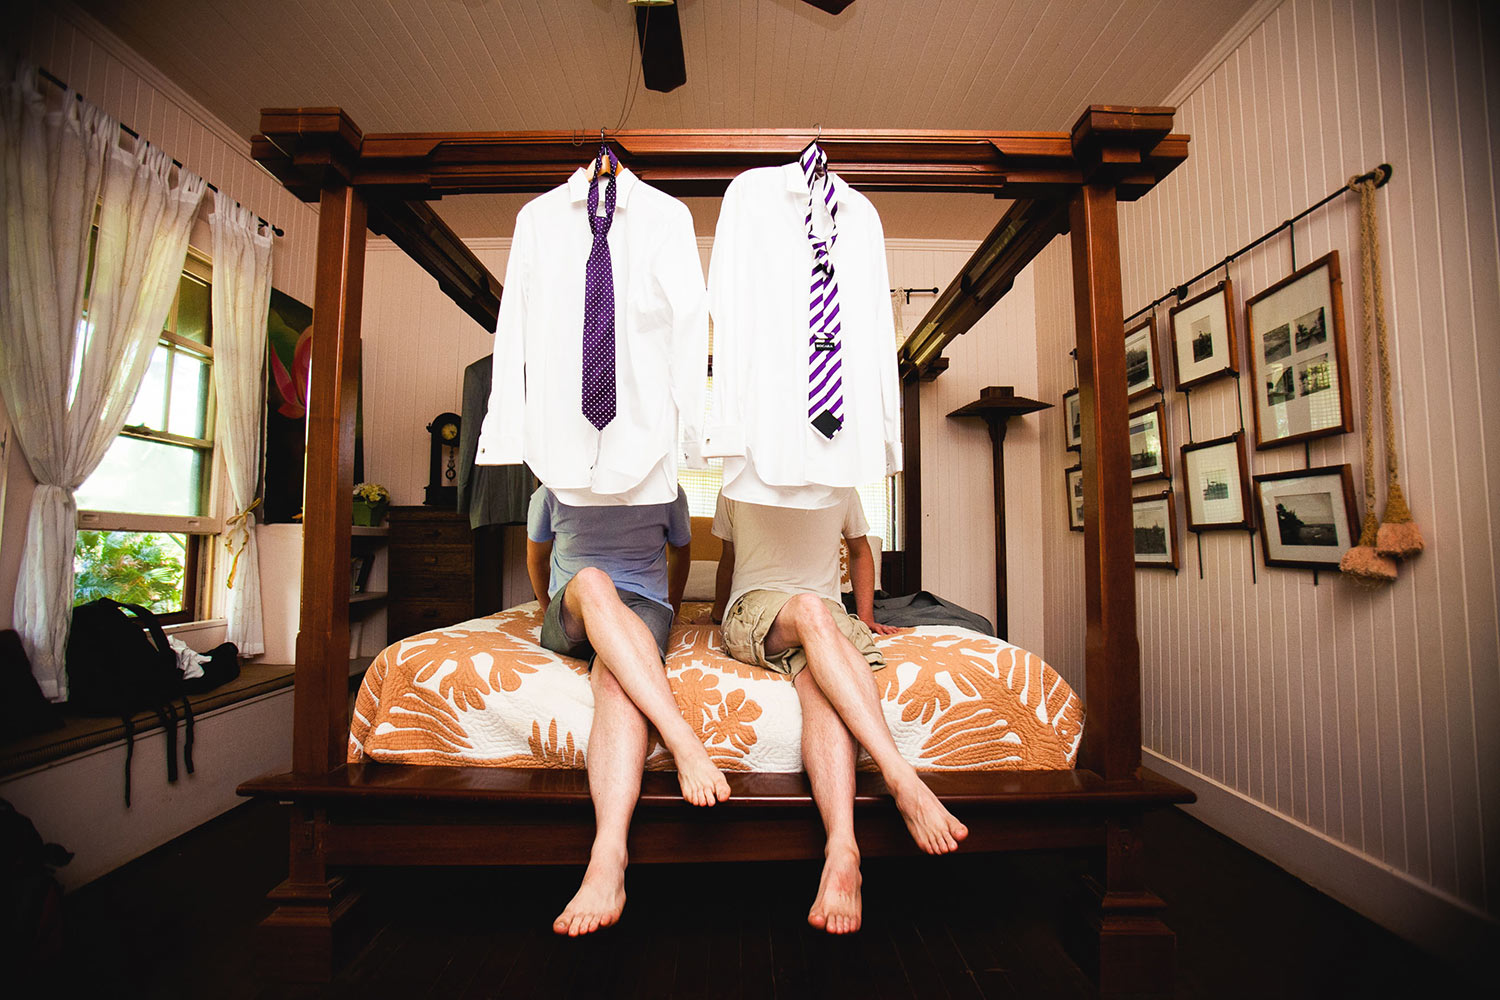 Grooms sit on the end of the bed with suits obscuring their faces - photo by Callaway Gable - Los Angeles